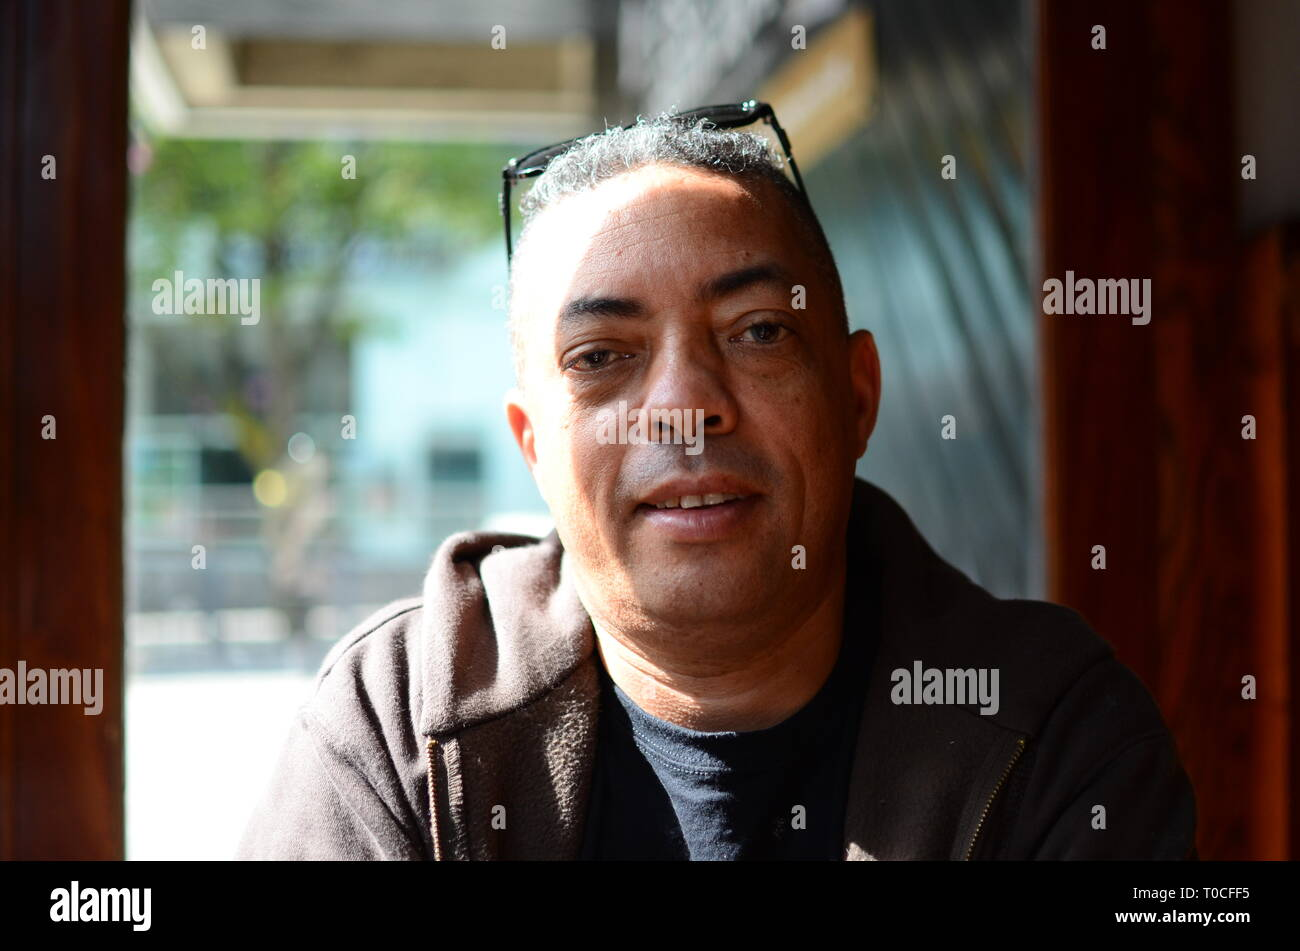 mixed race middle aged man, equality and diversity - Stock Image